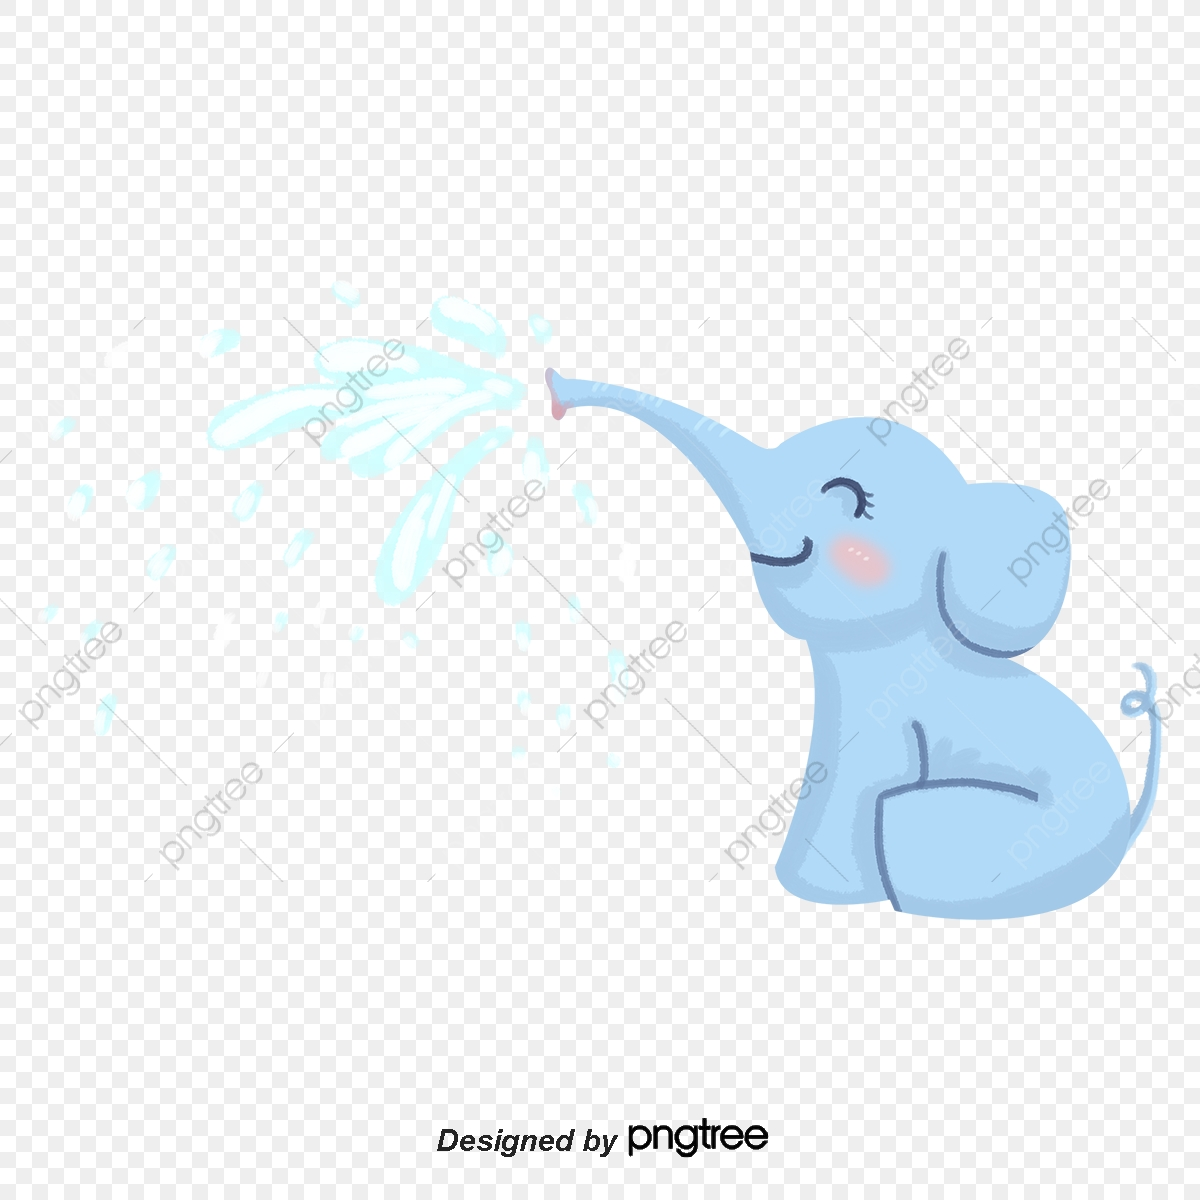 Cartoon Blue Sprinkler Elephant Cartoon Clipart Animal Lovely Png Transparent Clipart Image And Psd File For Free Download Subpng offers free blue elephant clip art, blue elephant transparent images, blue download free blue elephant transparent images in your personal projects or share it as a cool sticker on tumblr. https pngtree com freepng cartoon blue sprinkler elephant 4141794 html